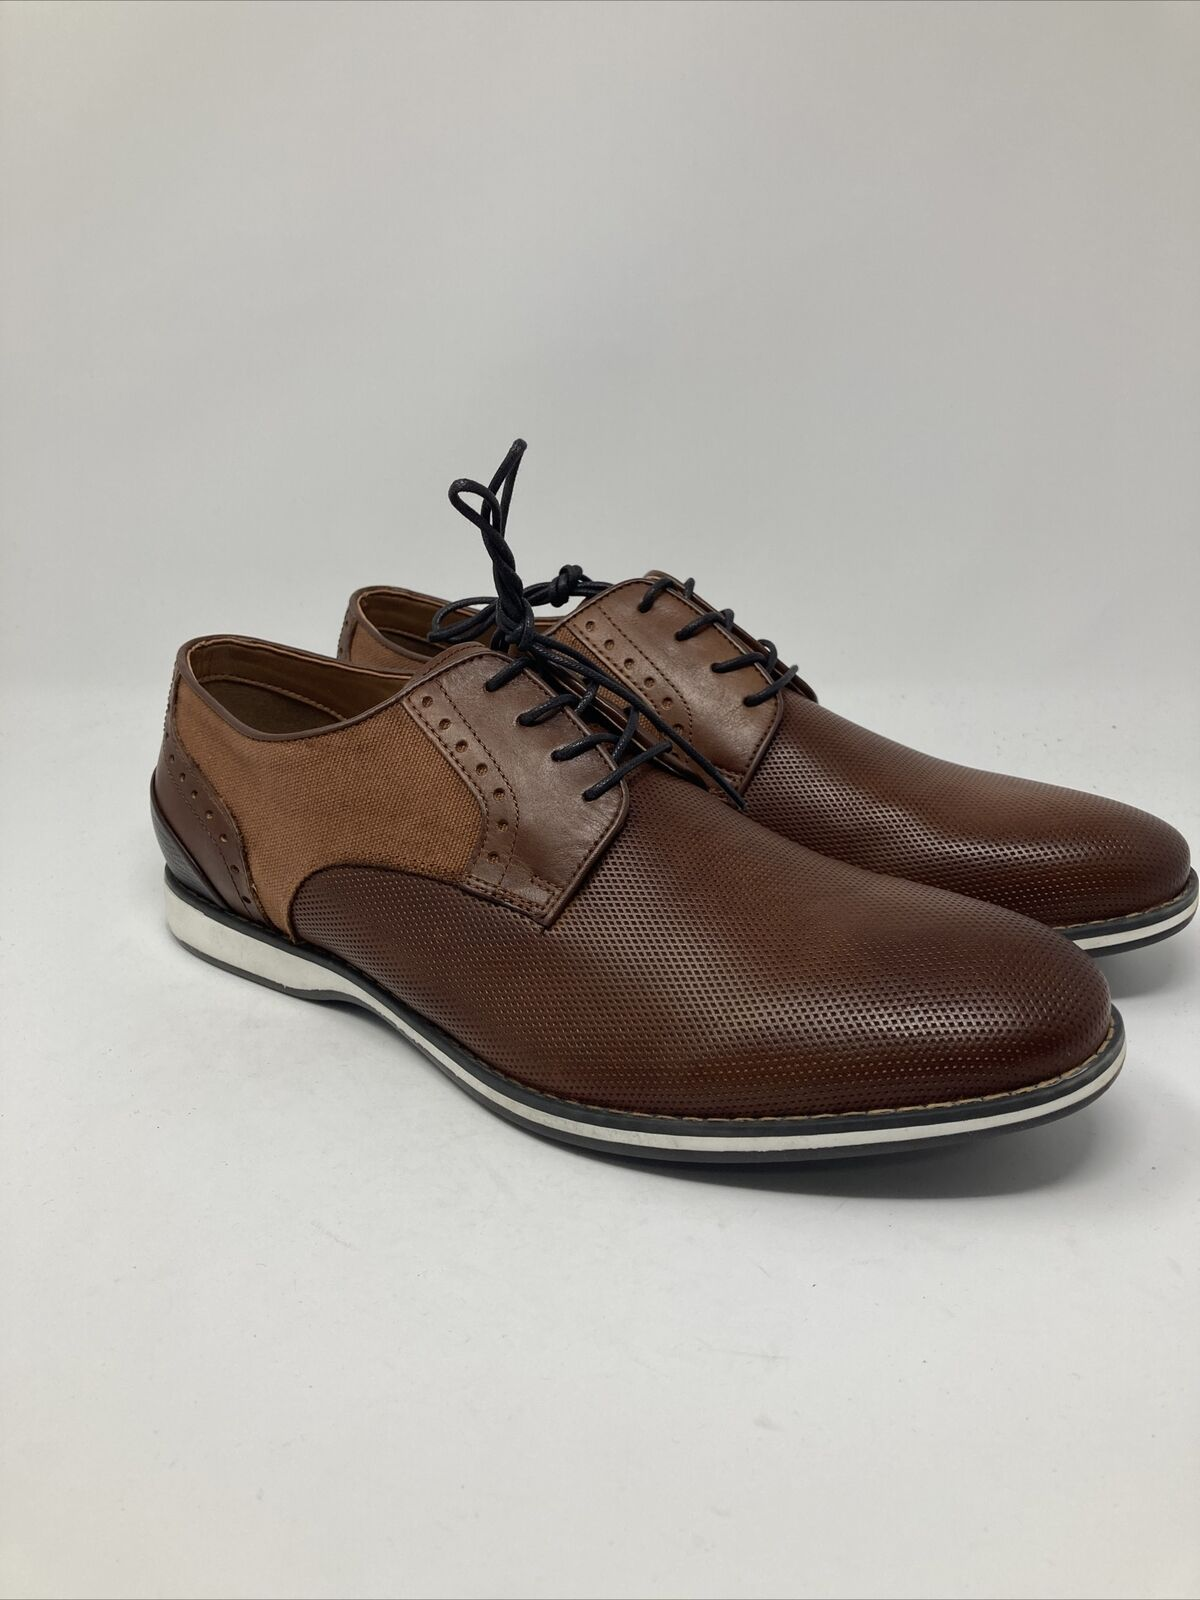 Kenneth Cole Reaction Men's Weiser Lace Up, 12 M US, Brown/Black